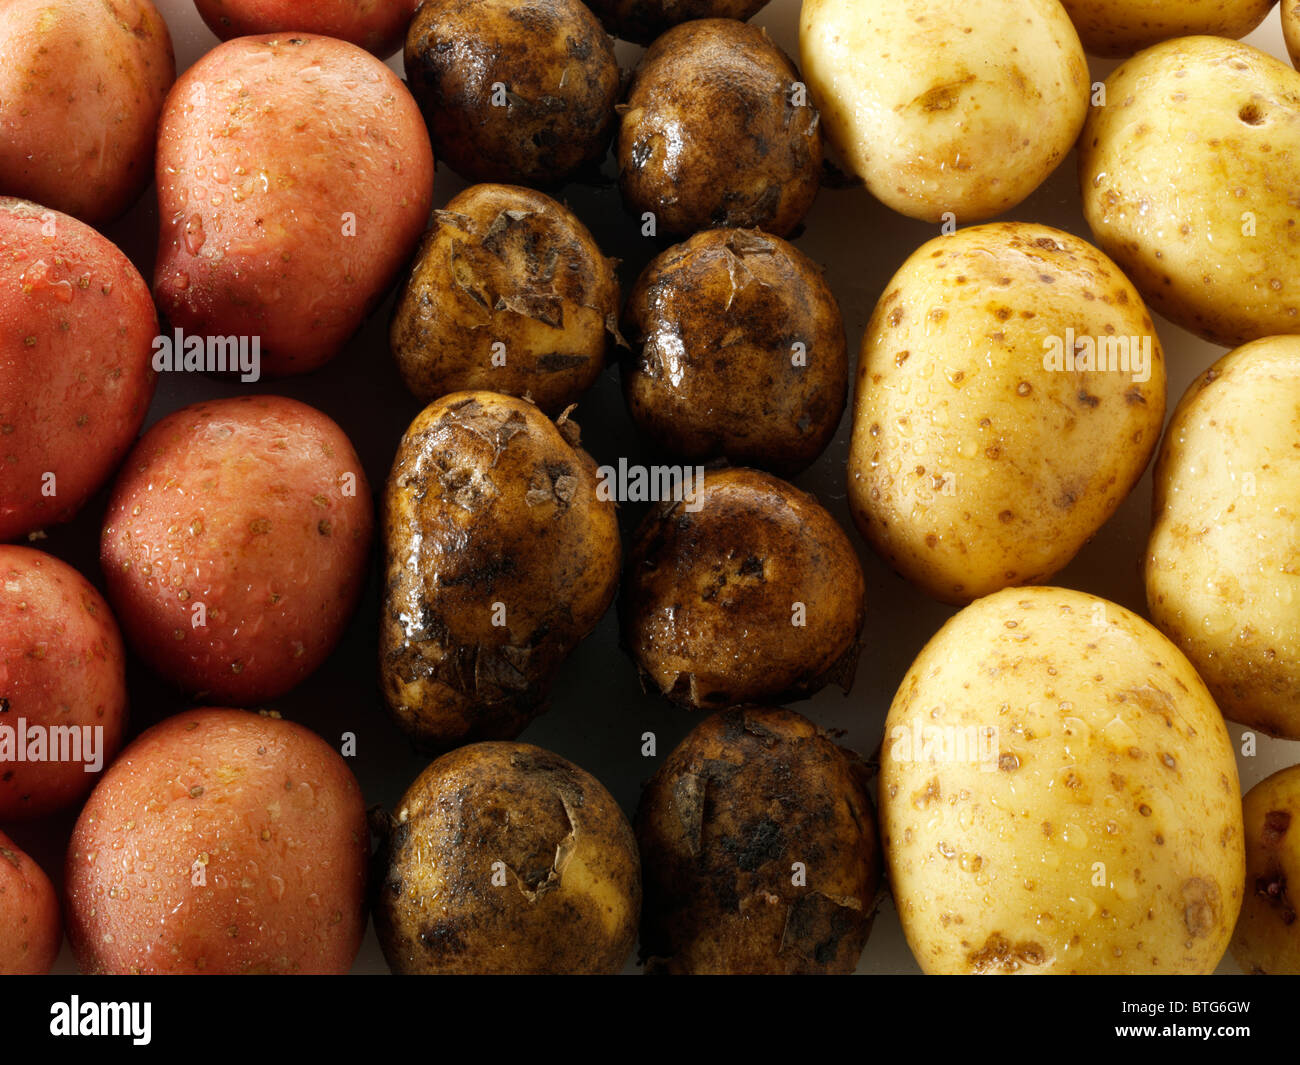 Mixed fresh un-cooked potatoes - Stock Image